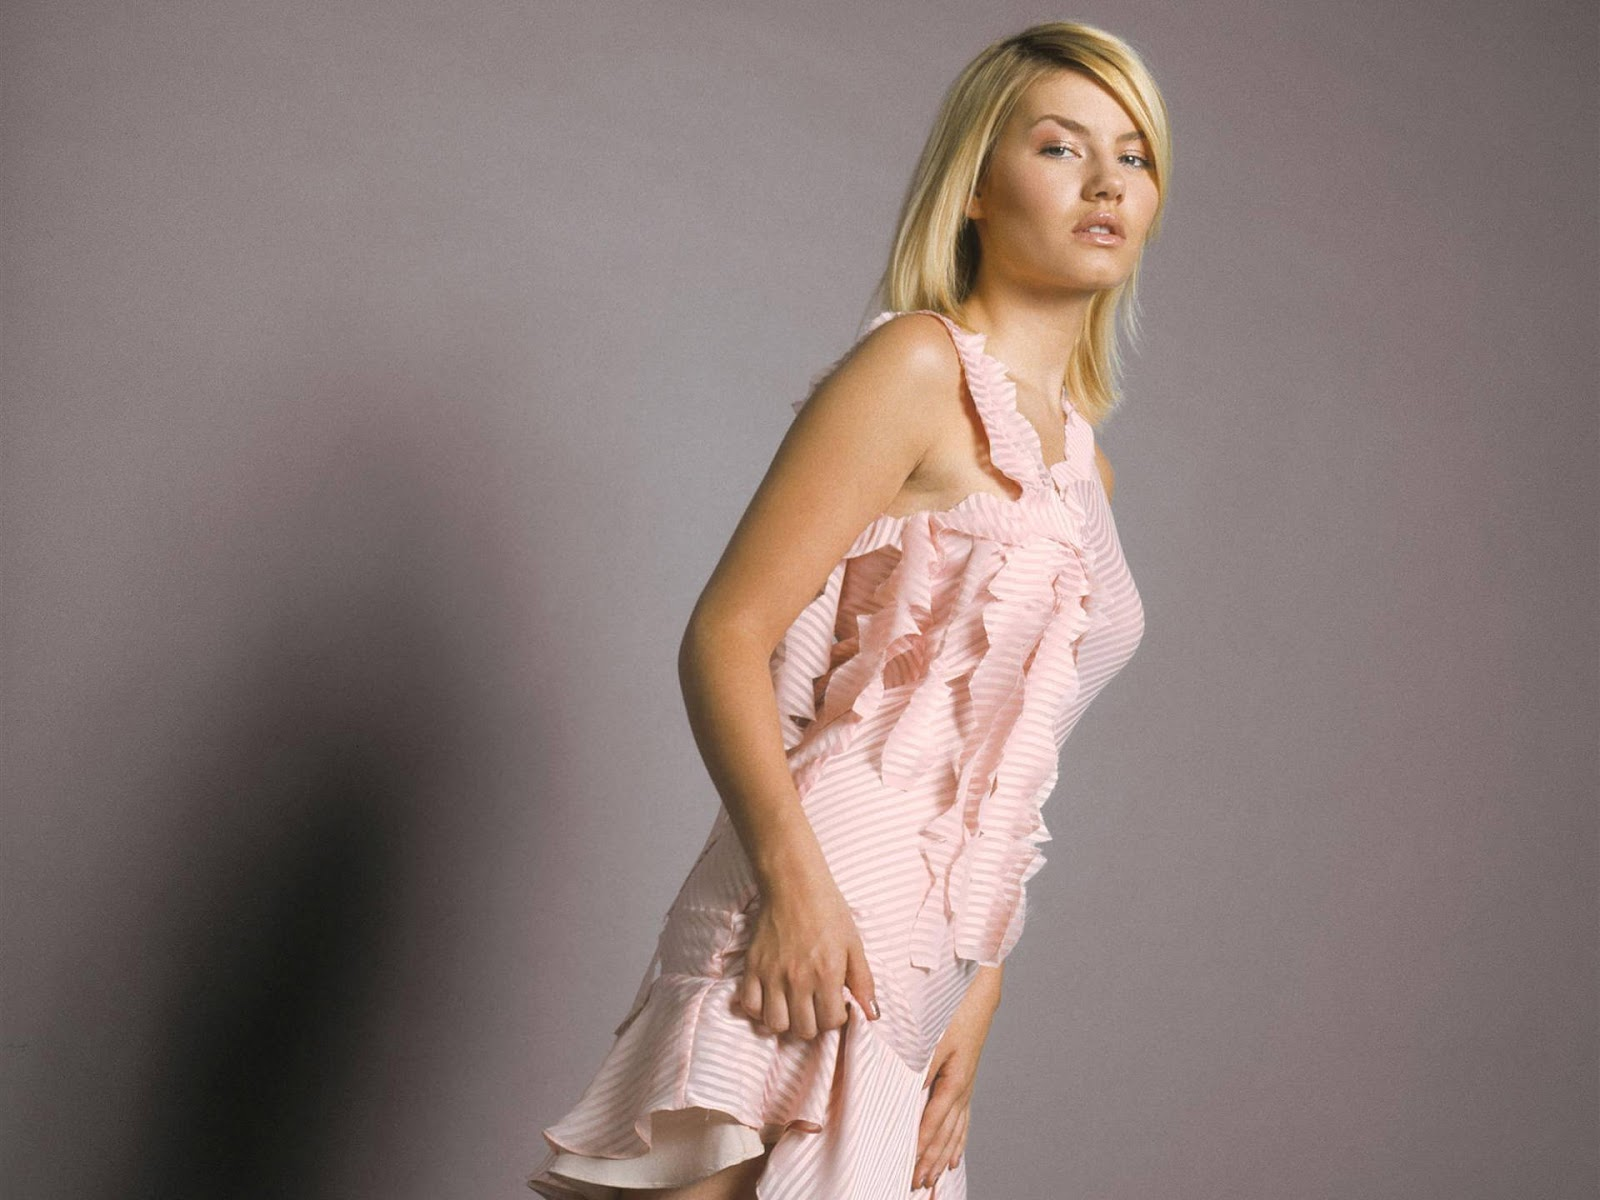 Elisha Cuthbert Hd Wallpapers: HD Wallparers: Elisha Cuthbert Full HD Wallpapers